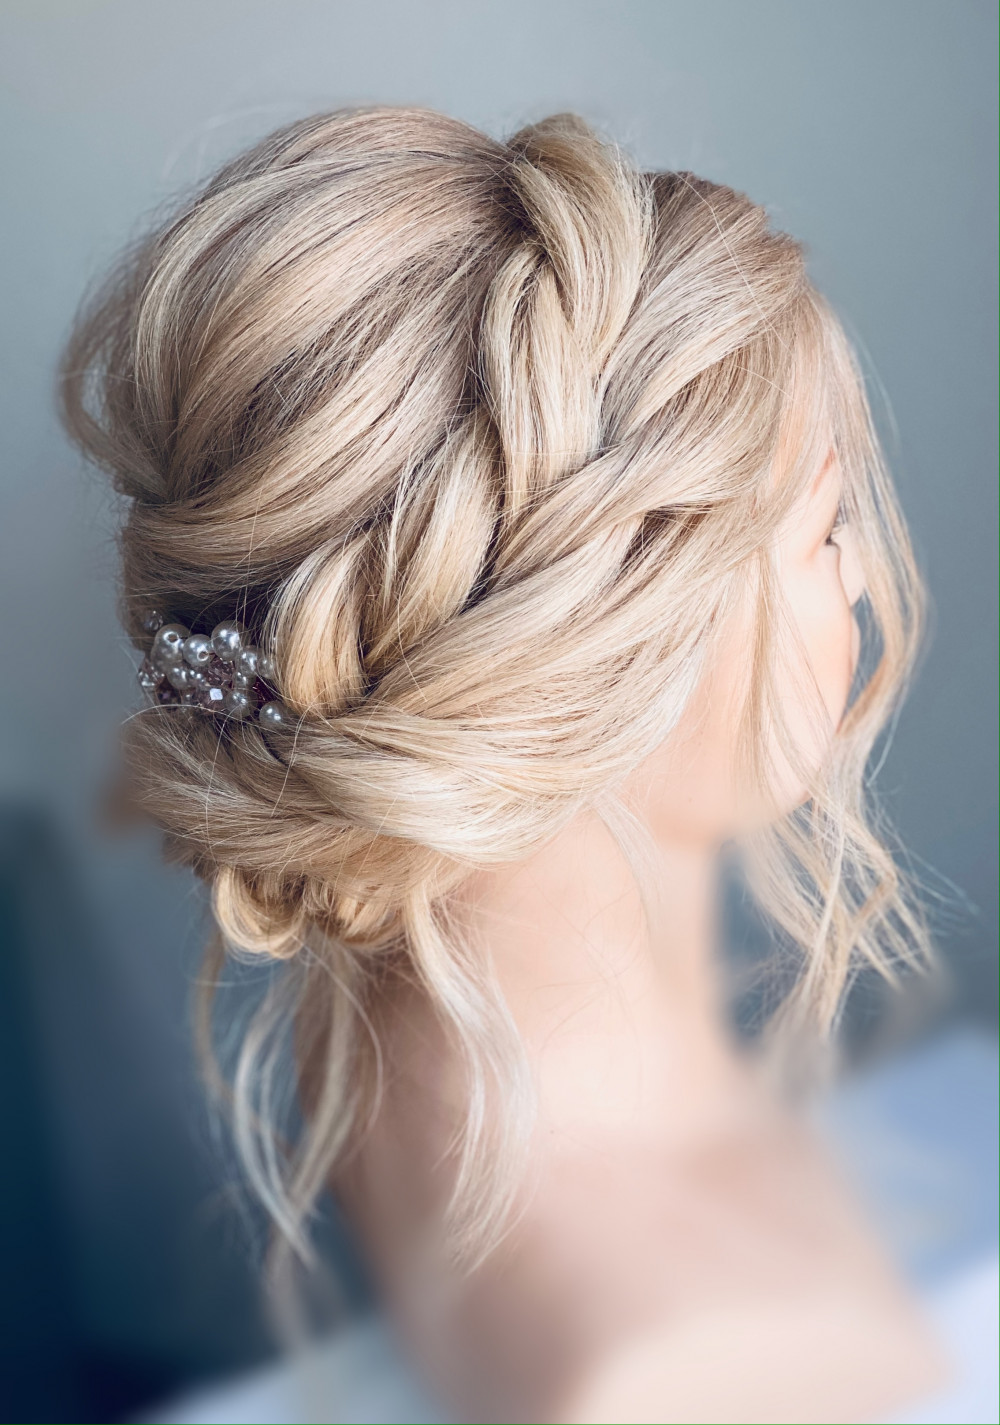 Beautiful soft updo. Braided detail with soft trendals to keep everything flowing and pretty - Make Me Bridal Artist: Carter Hair & Makeup. Photography by: Me. #boho #bridesmaidhair #braidedupdo #bridalhairstylist #hairup #bridalhairup #softupdo #crownbraid #blondebride